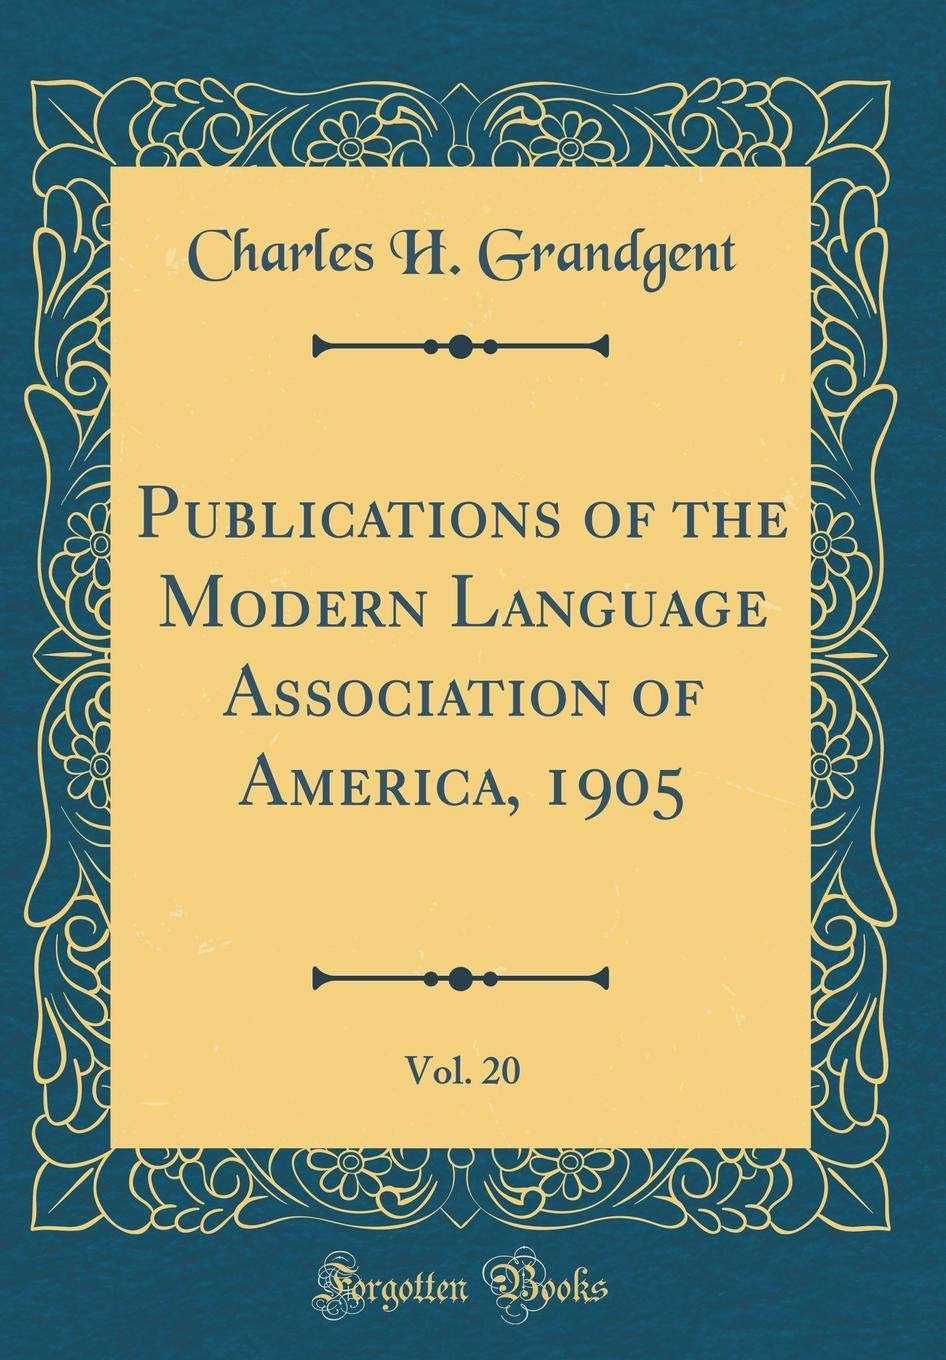 Download Publications of the Modern Language Association of America, 1905, Vol. 20 (Classic Reprint) PDF